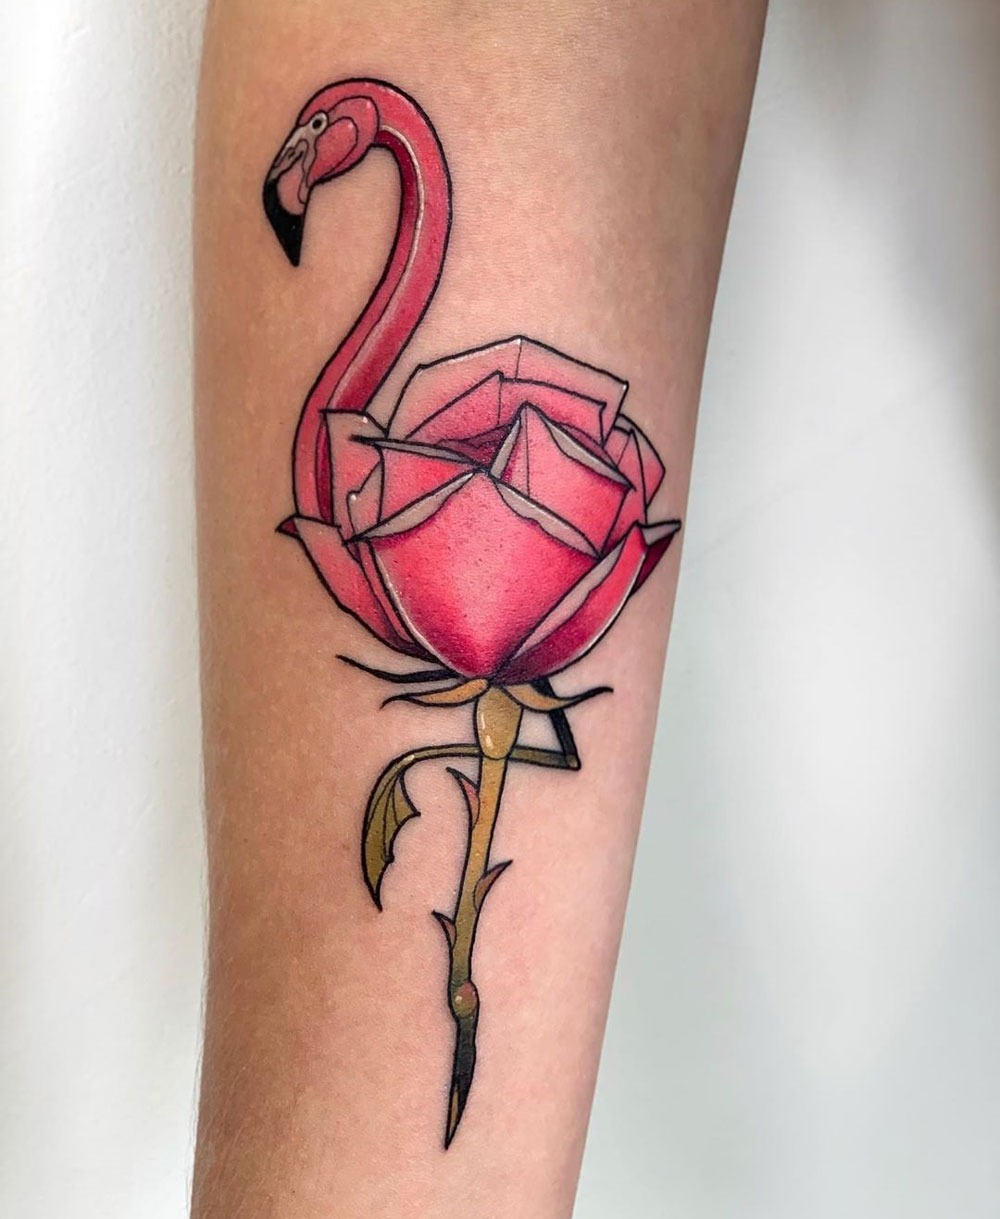 Flamingo merged with pink rose